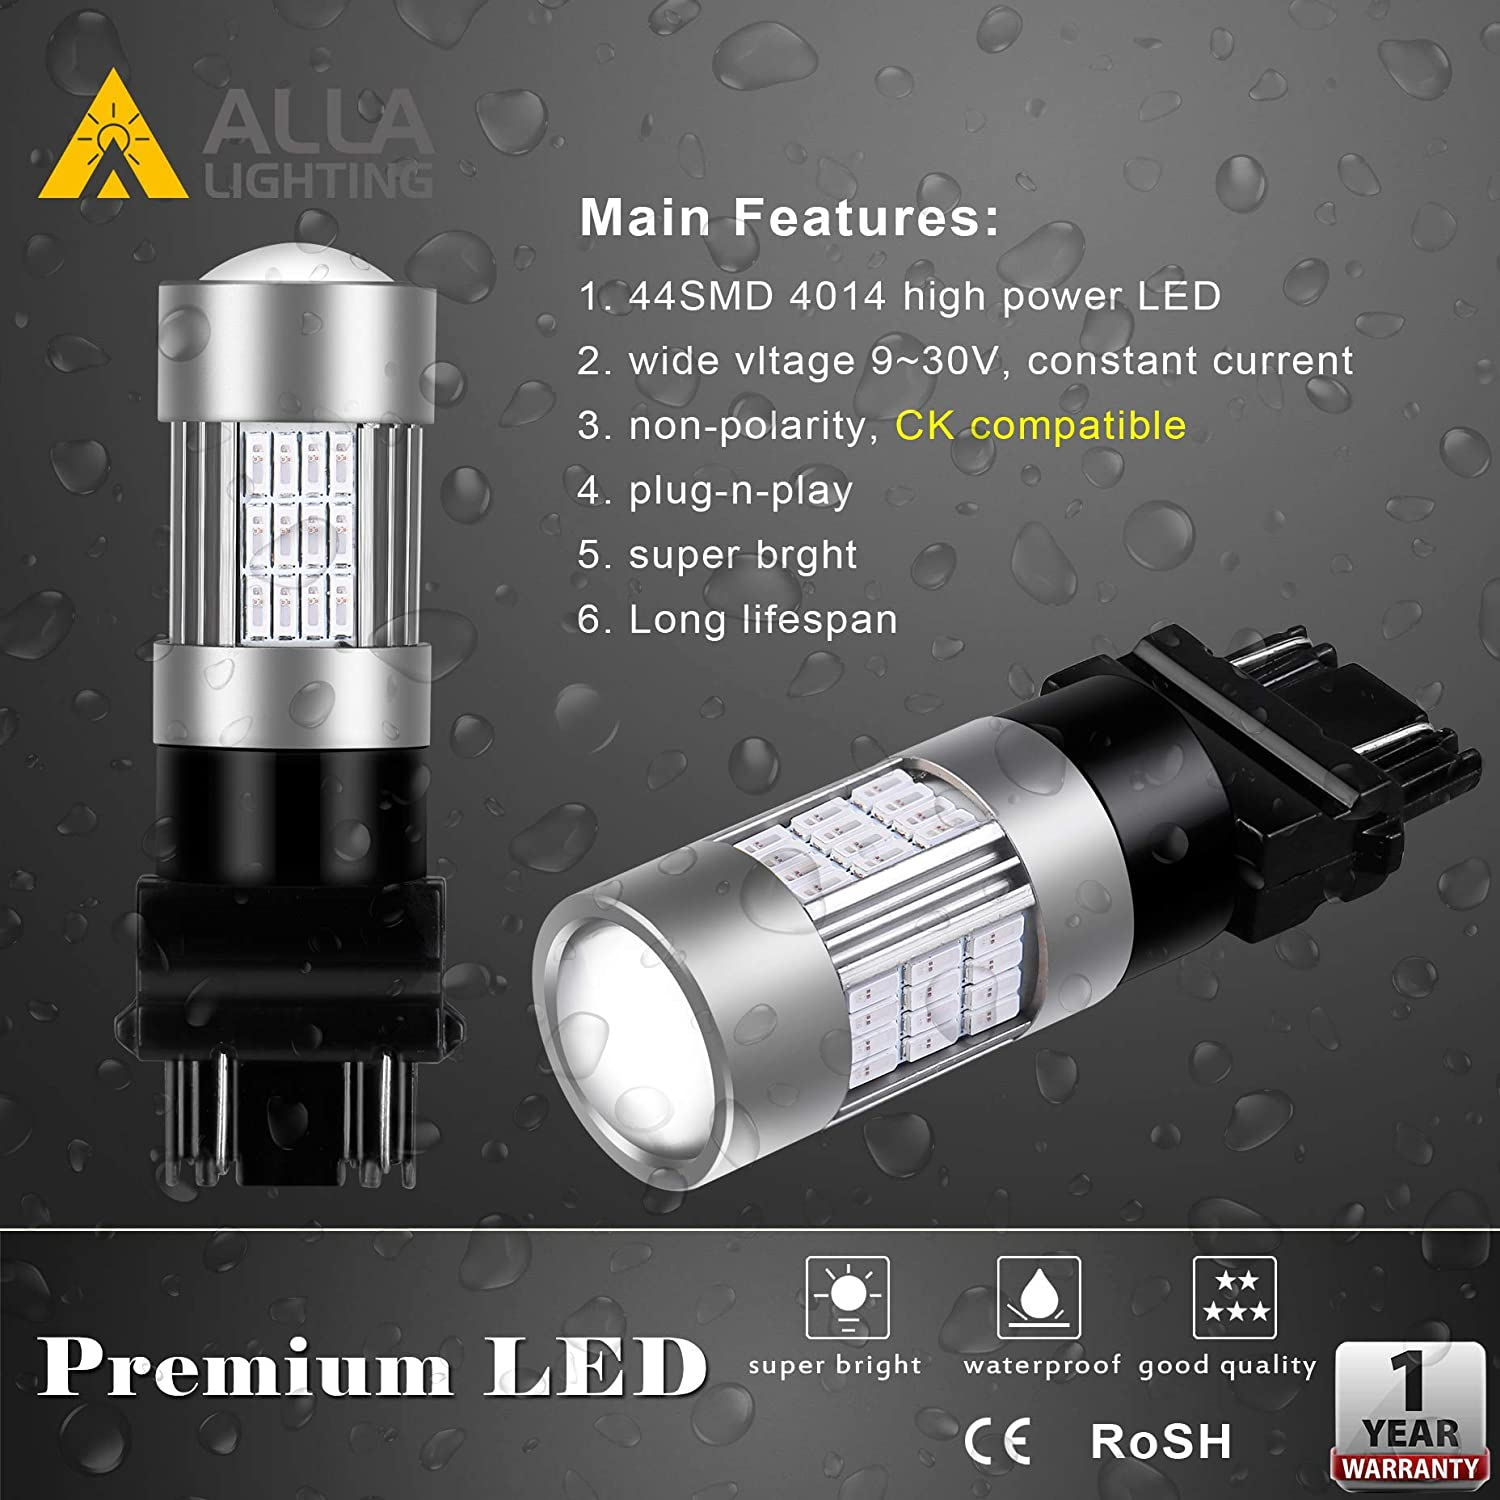 Set of 2 Alla Lighting 7443 LED Bulbs Super Bright T20 Wedge LED 7440 7443 Bulb 54-SMD High Power 4014 Chipsets LED W21W 7443 7440 Amber Yellow Turn Signal Blinker Light Lamp Bulbs Replacement